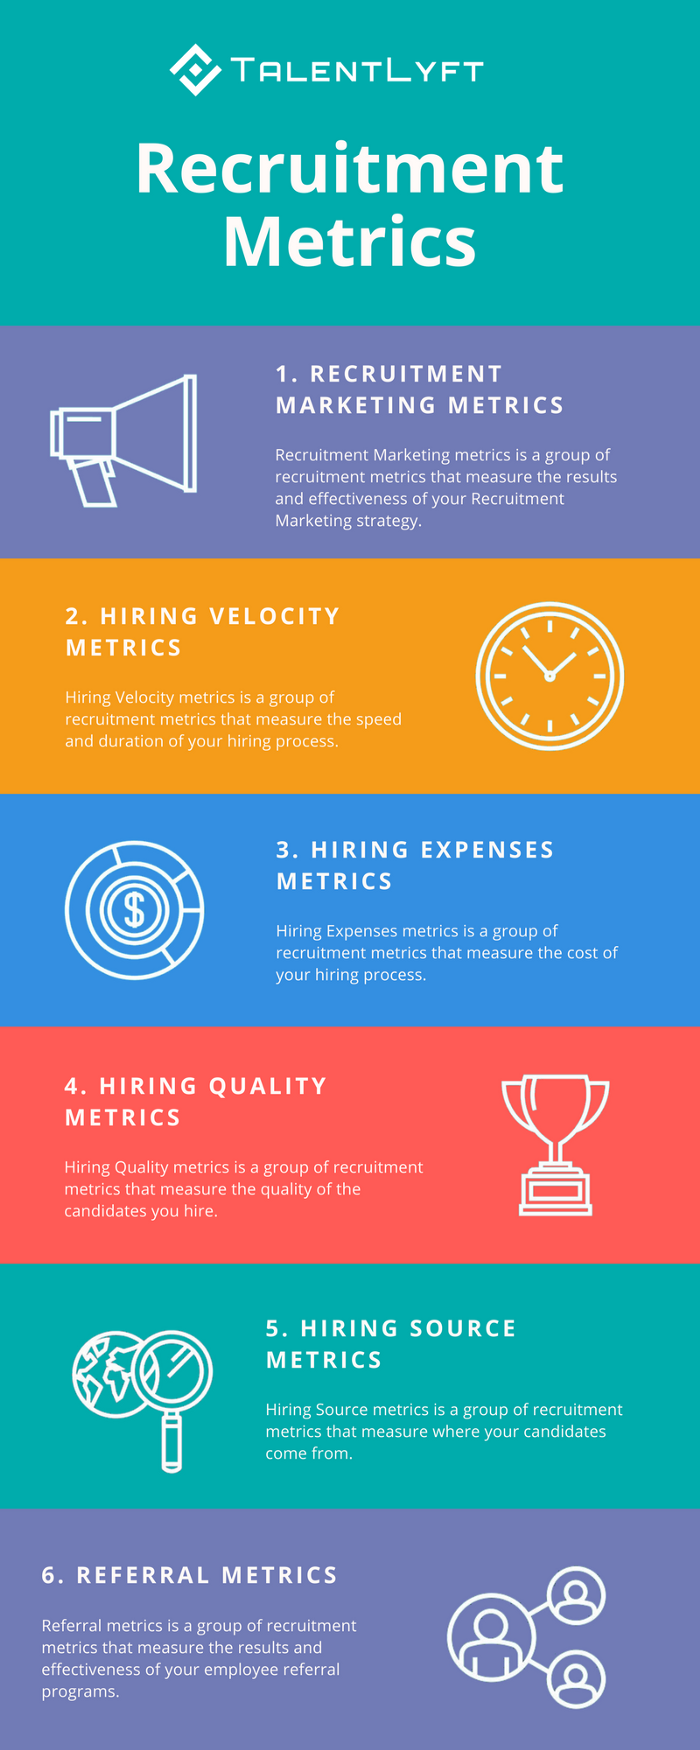 TalentLyft 6 Recruitment Metrics Infographic with Icons